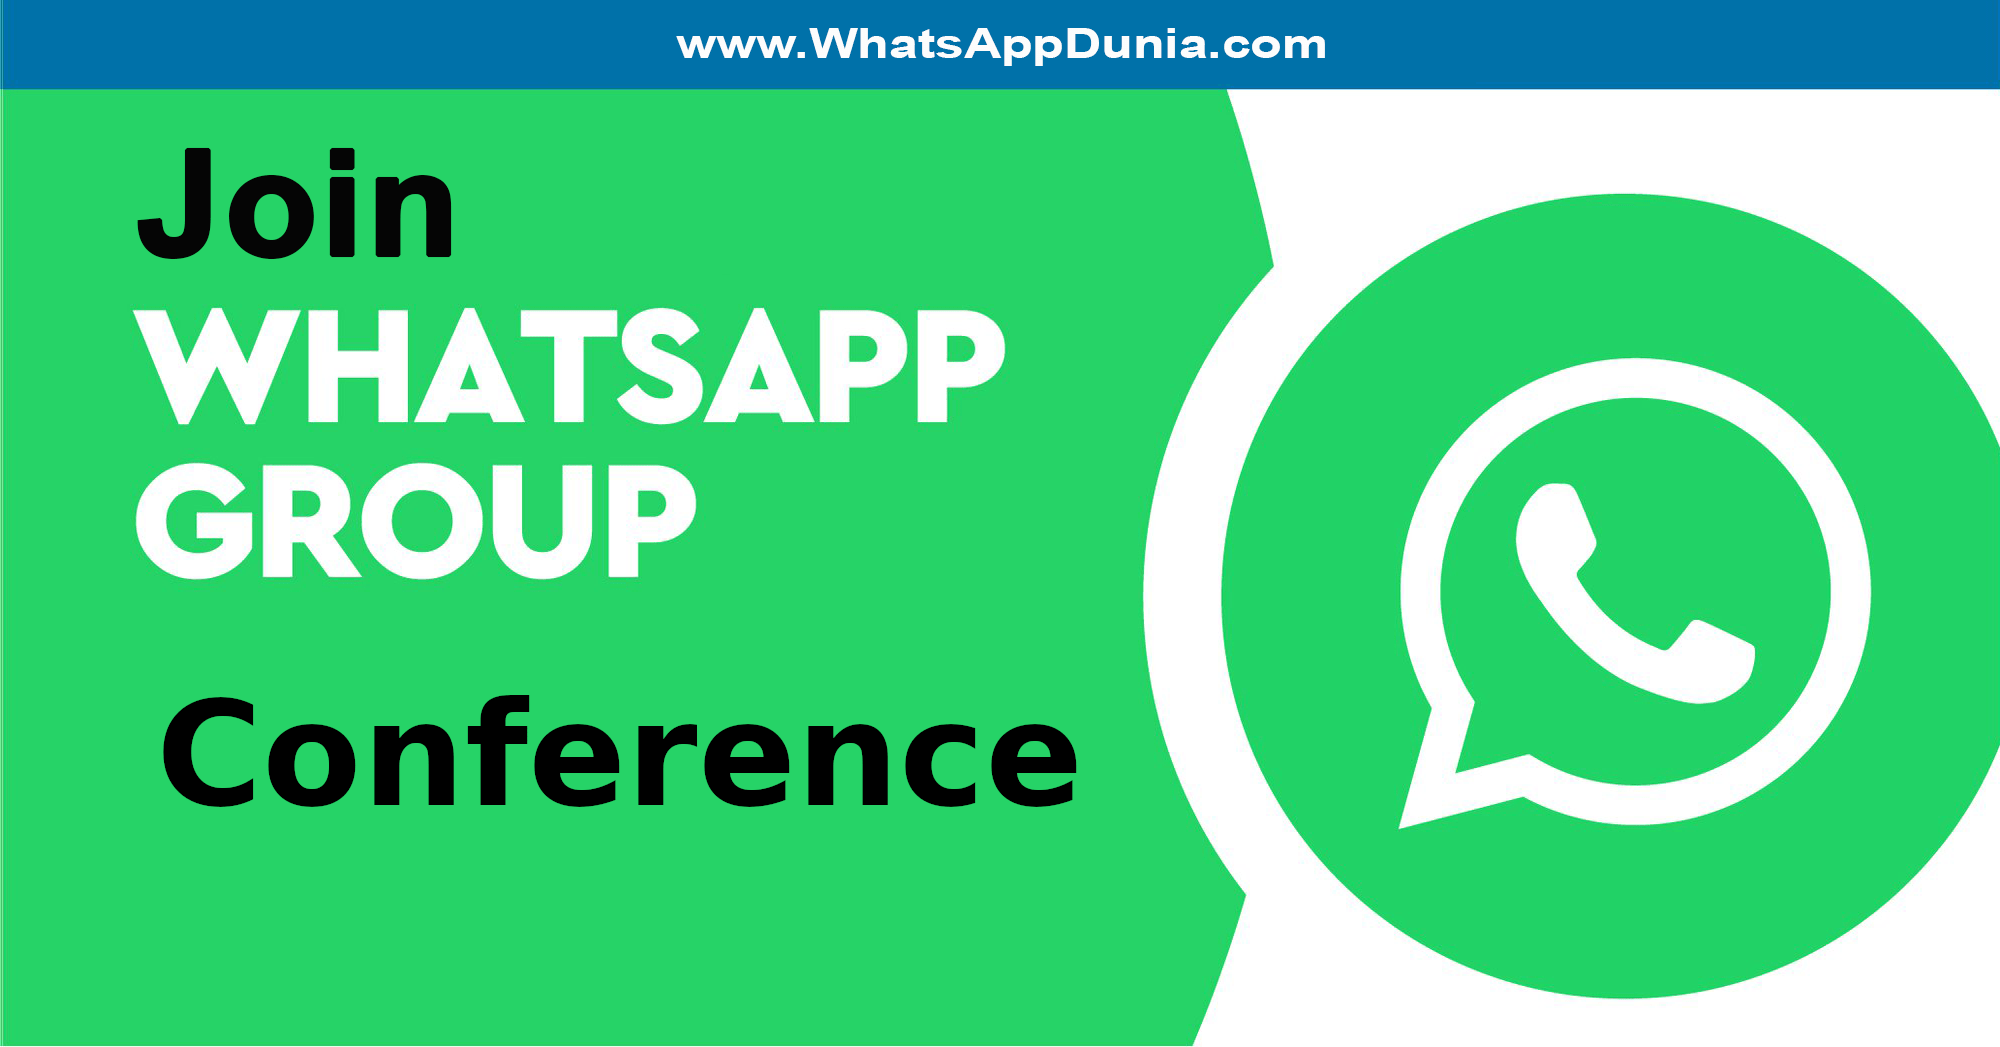 Conference Call WhatsApp Group Links